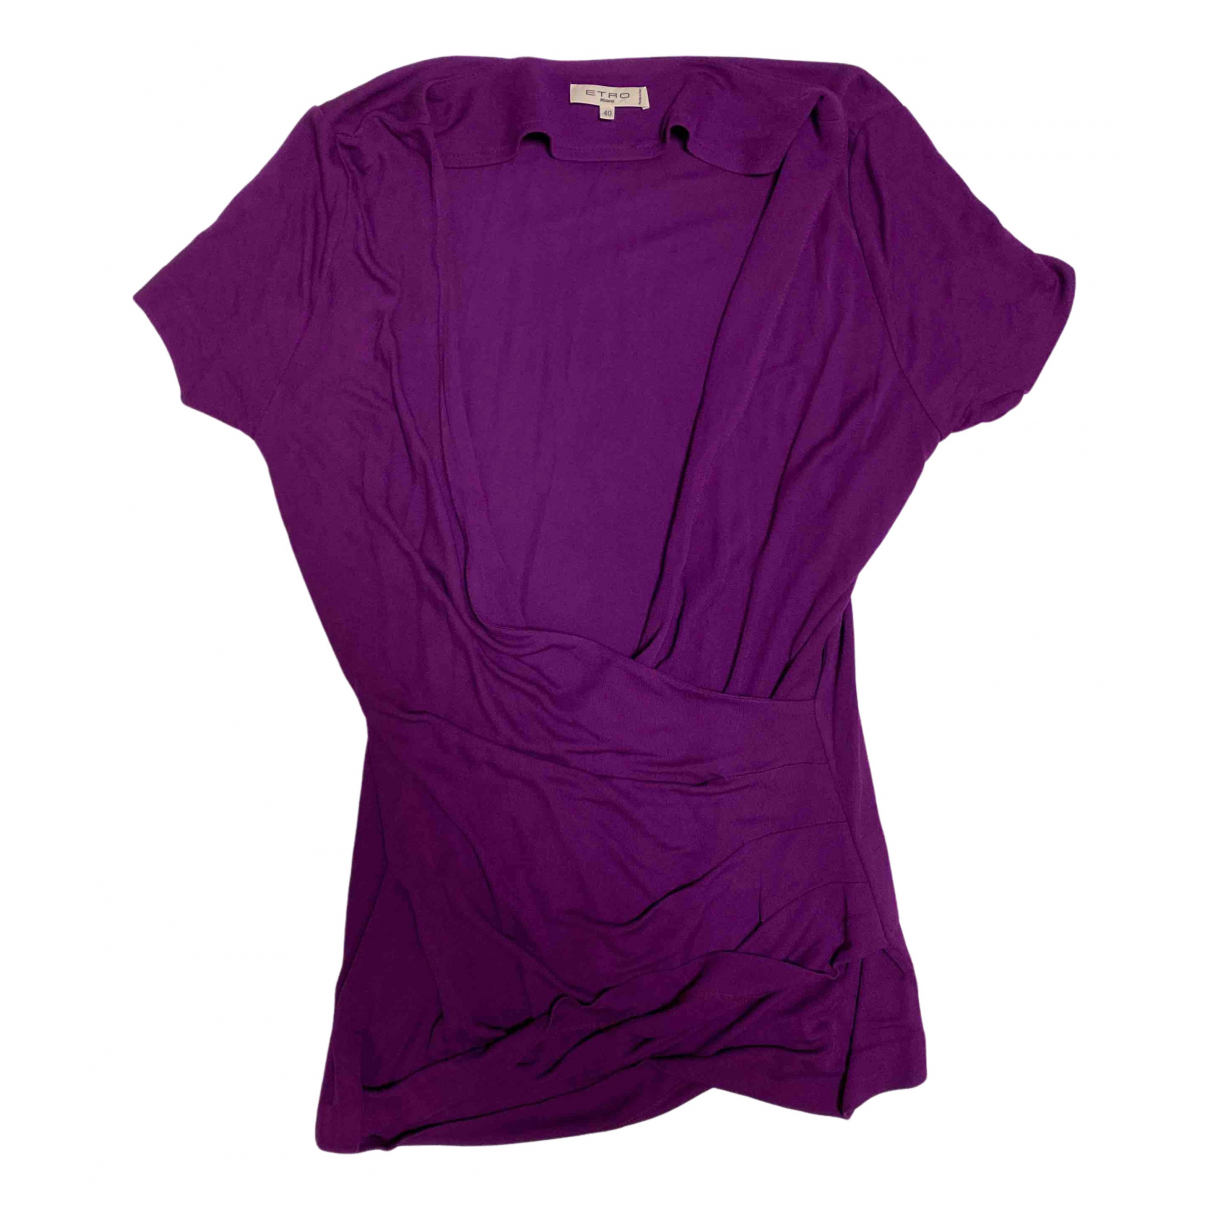 Etro N Purple Cotton dress for Women 40 IT